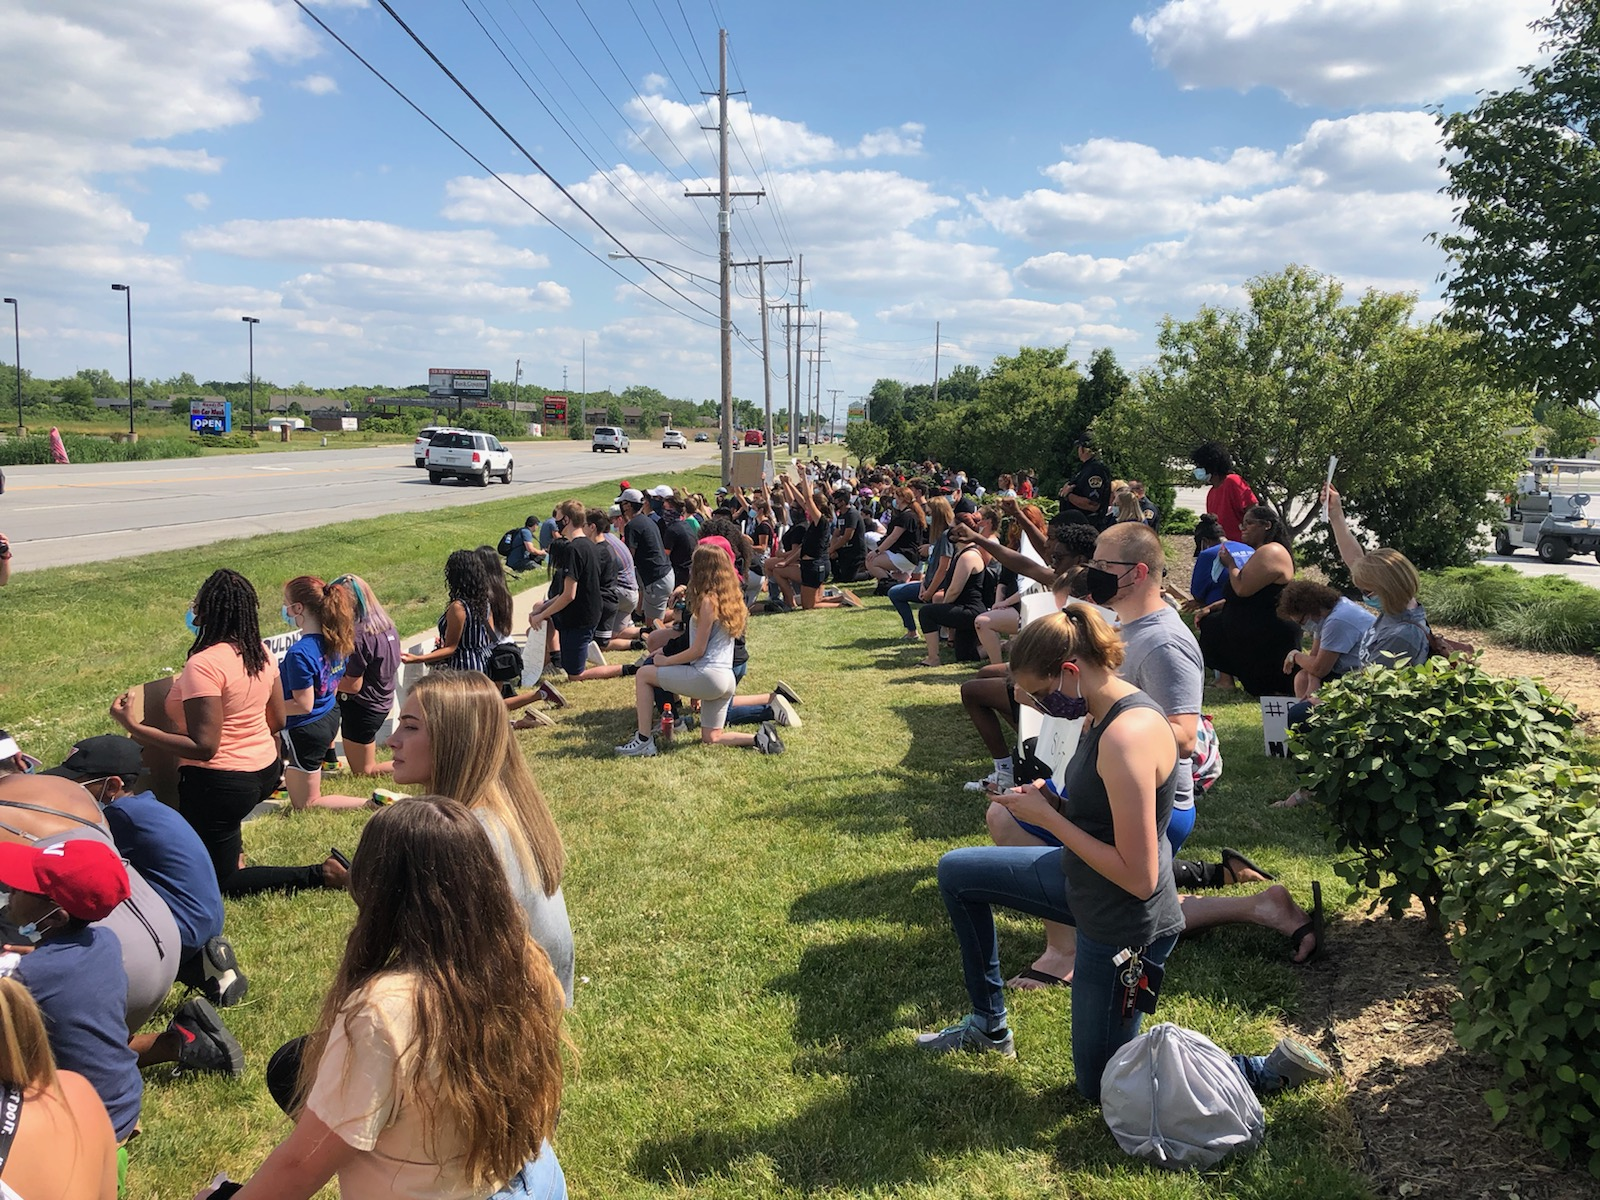 Lake Central students and staff, along with community members, rallied to draw attention to social injustice and racial bias on June 16,2020.